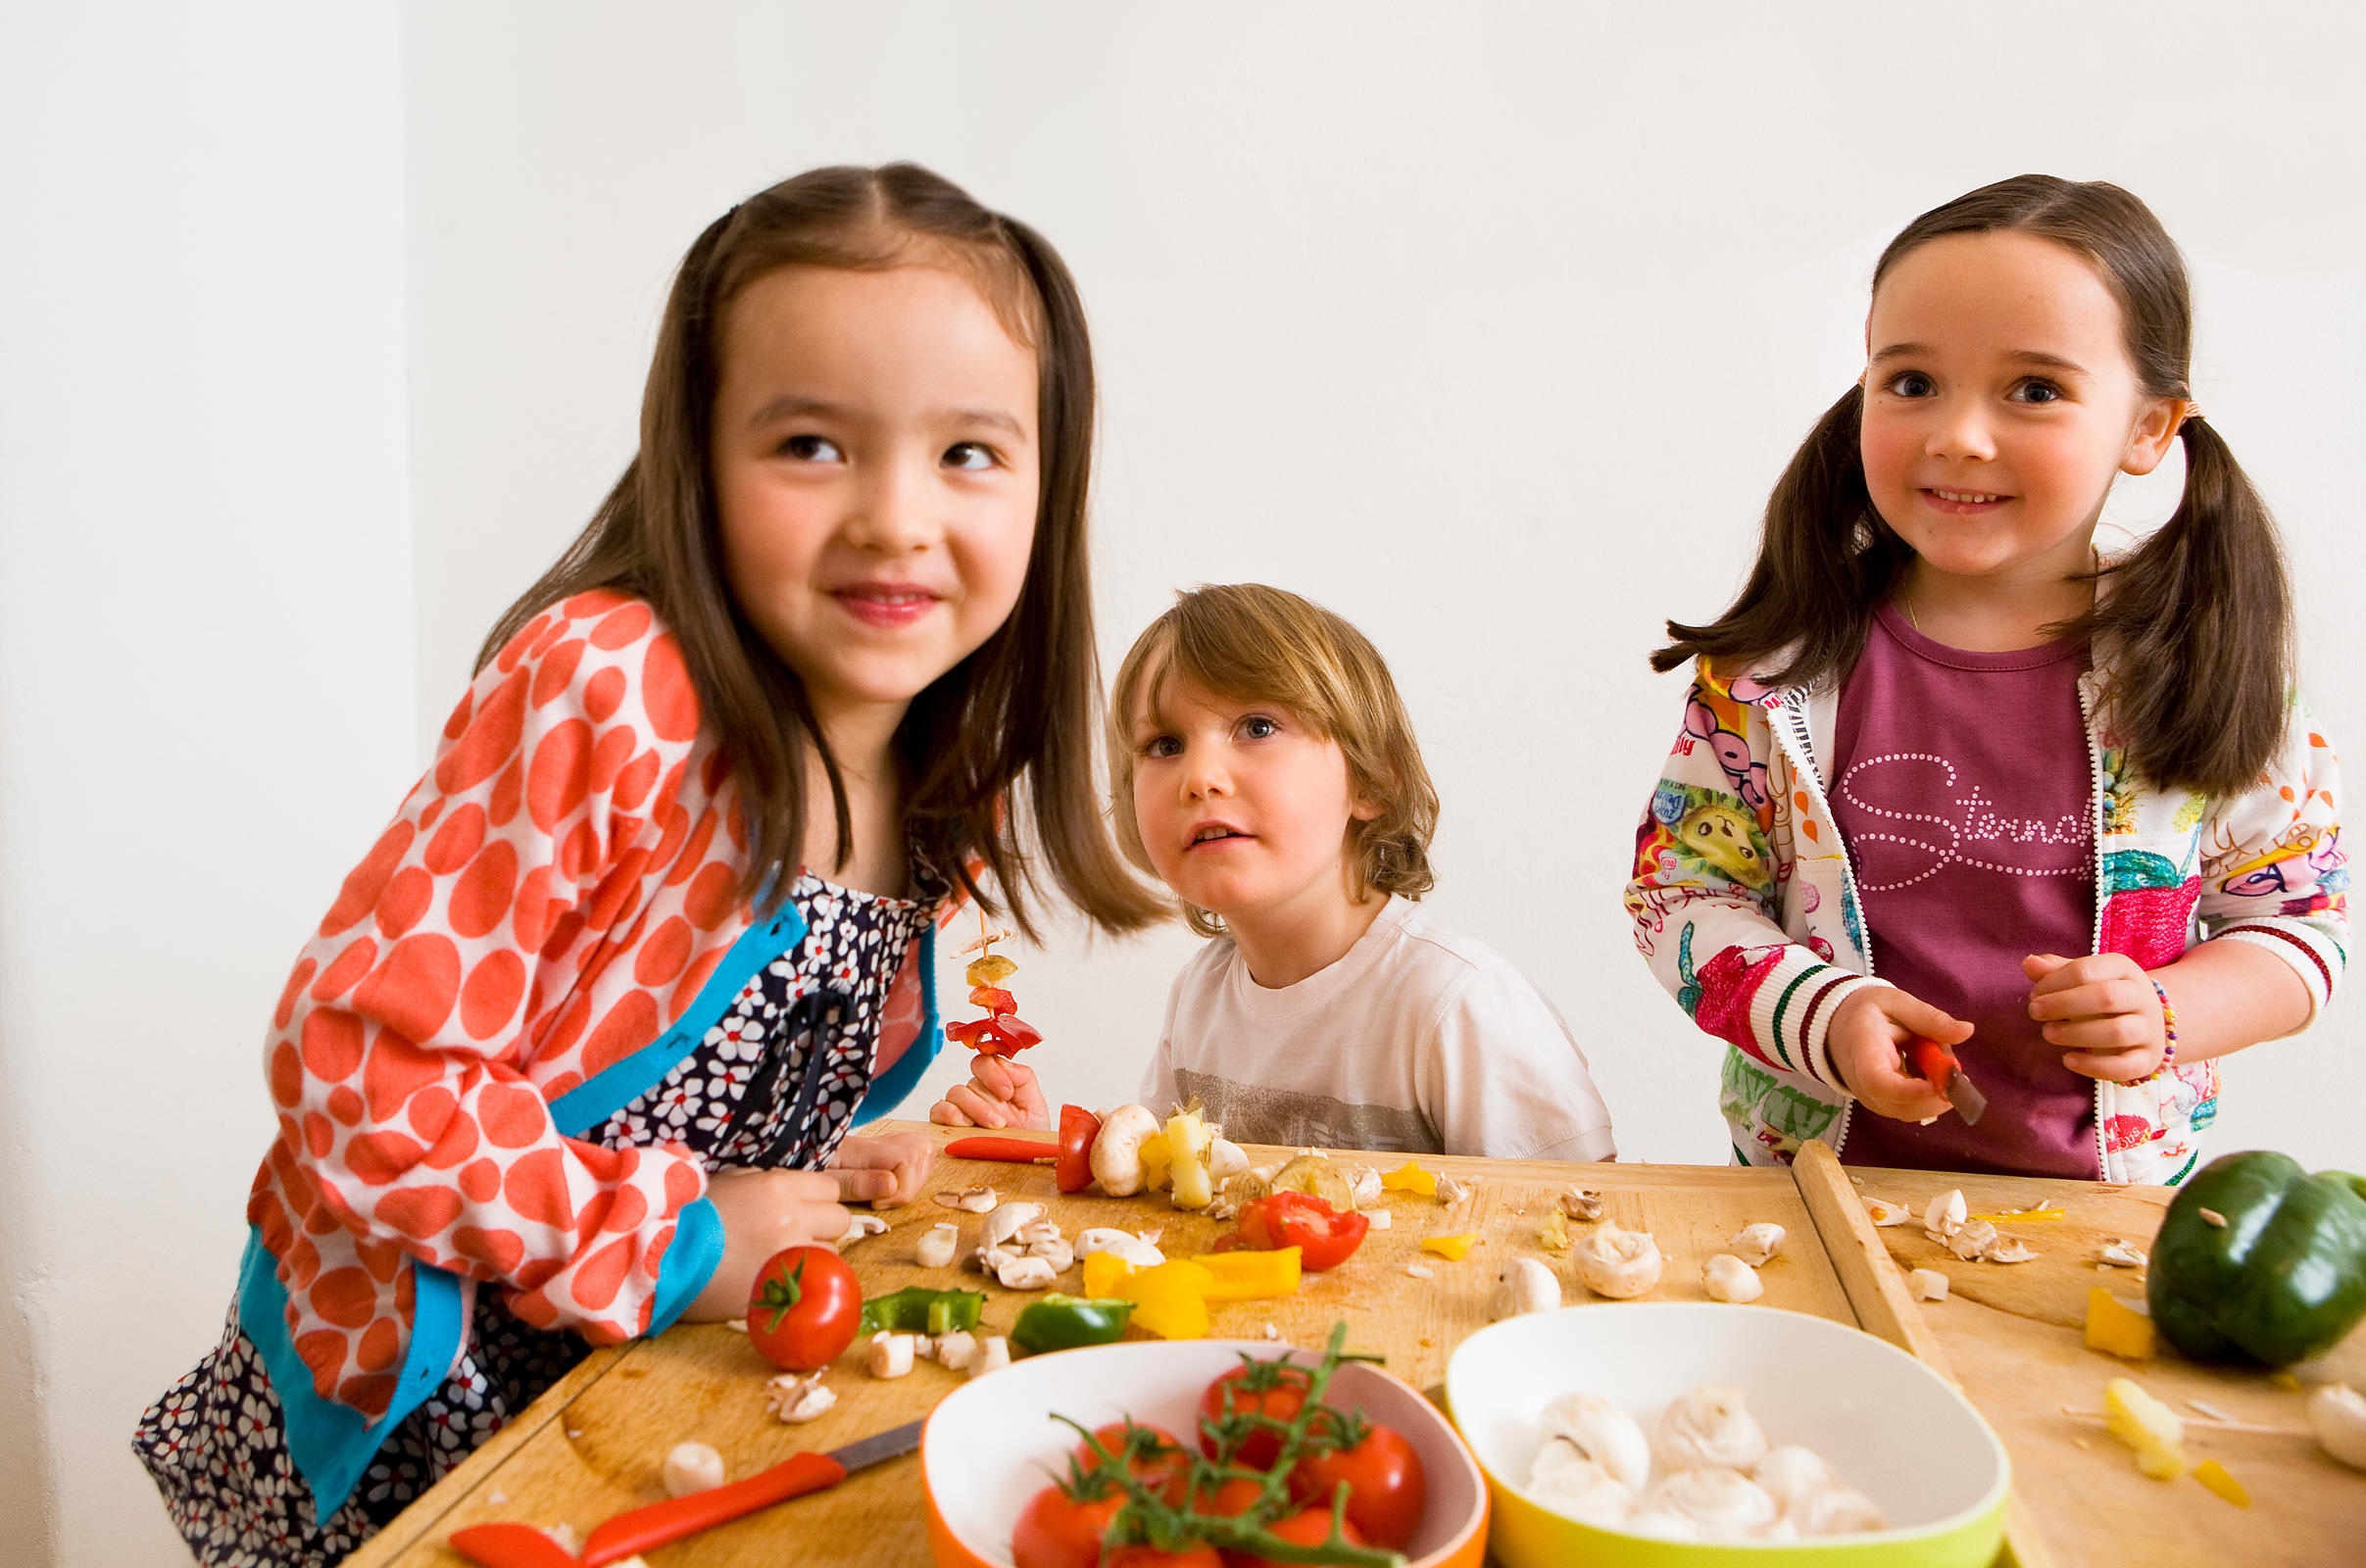 Children cooking together in kitchen